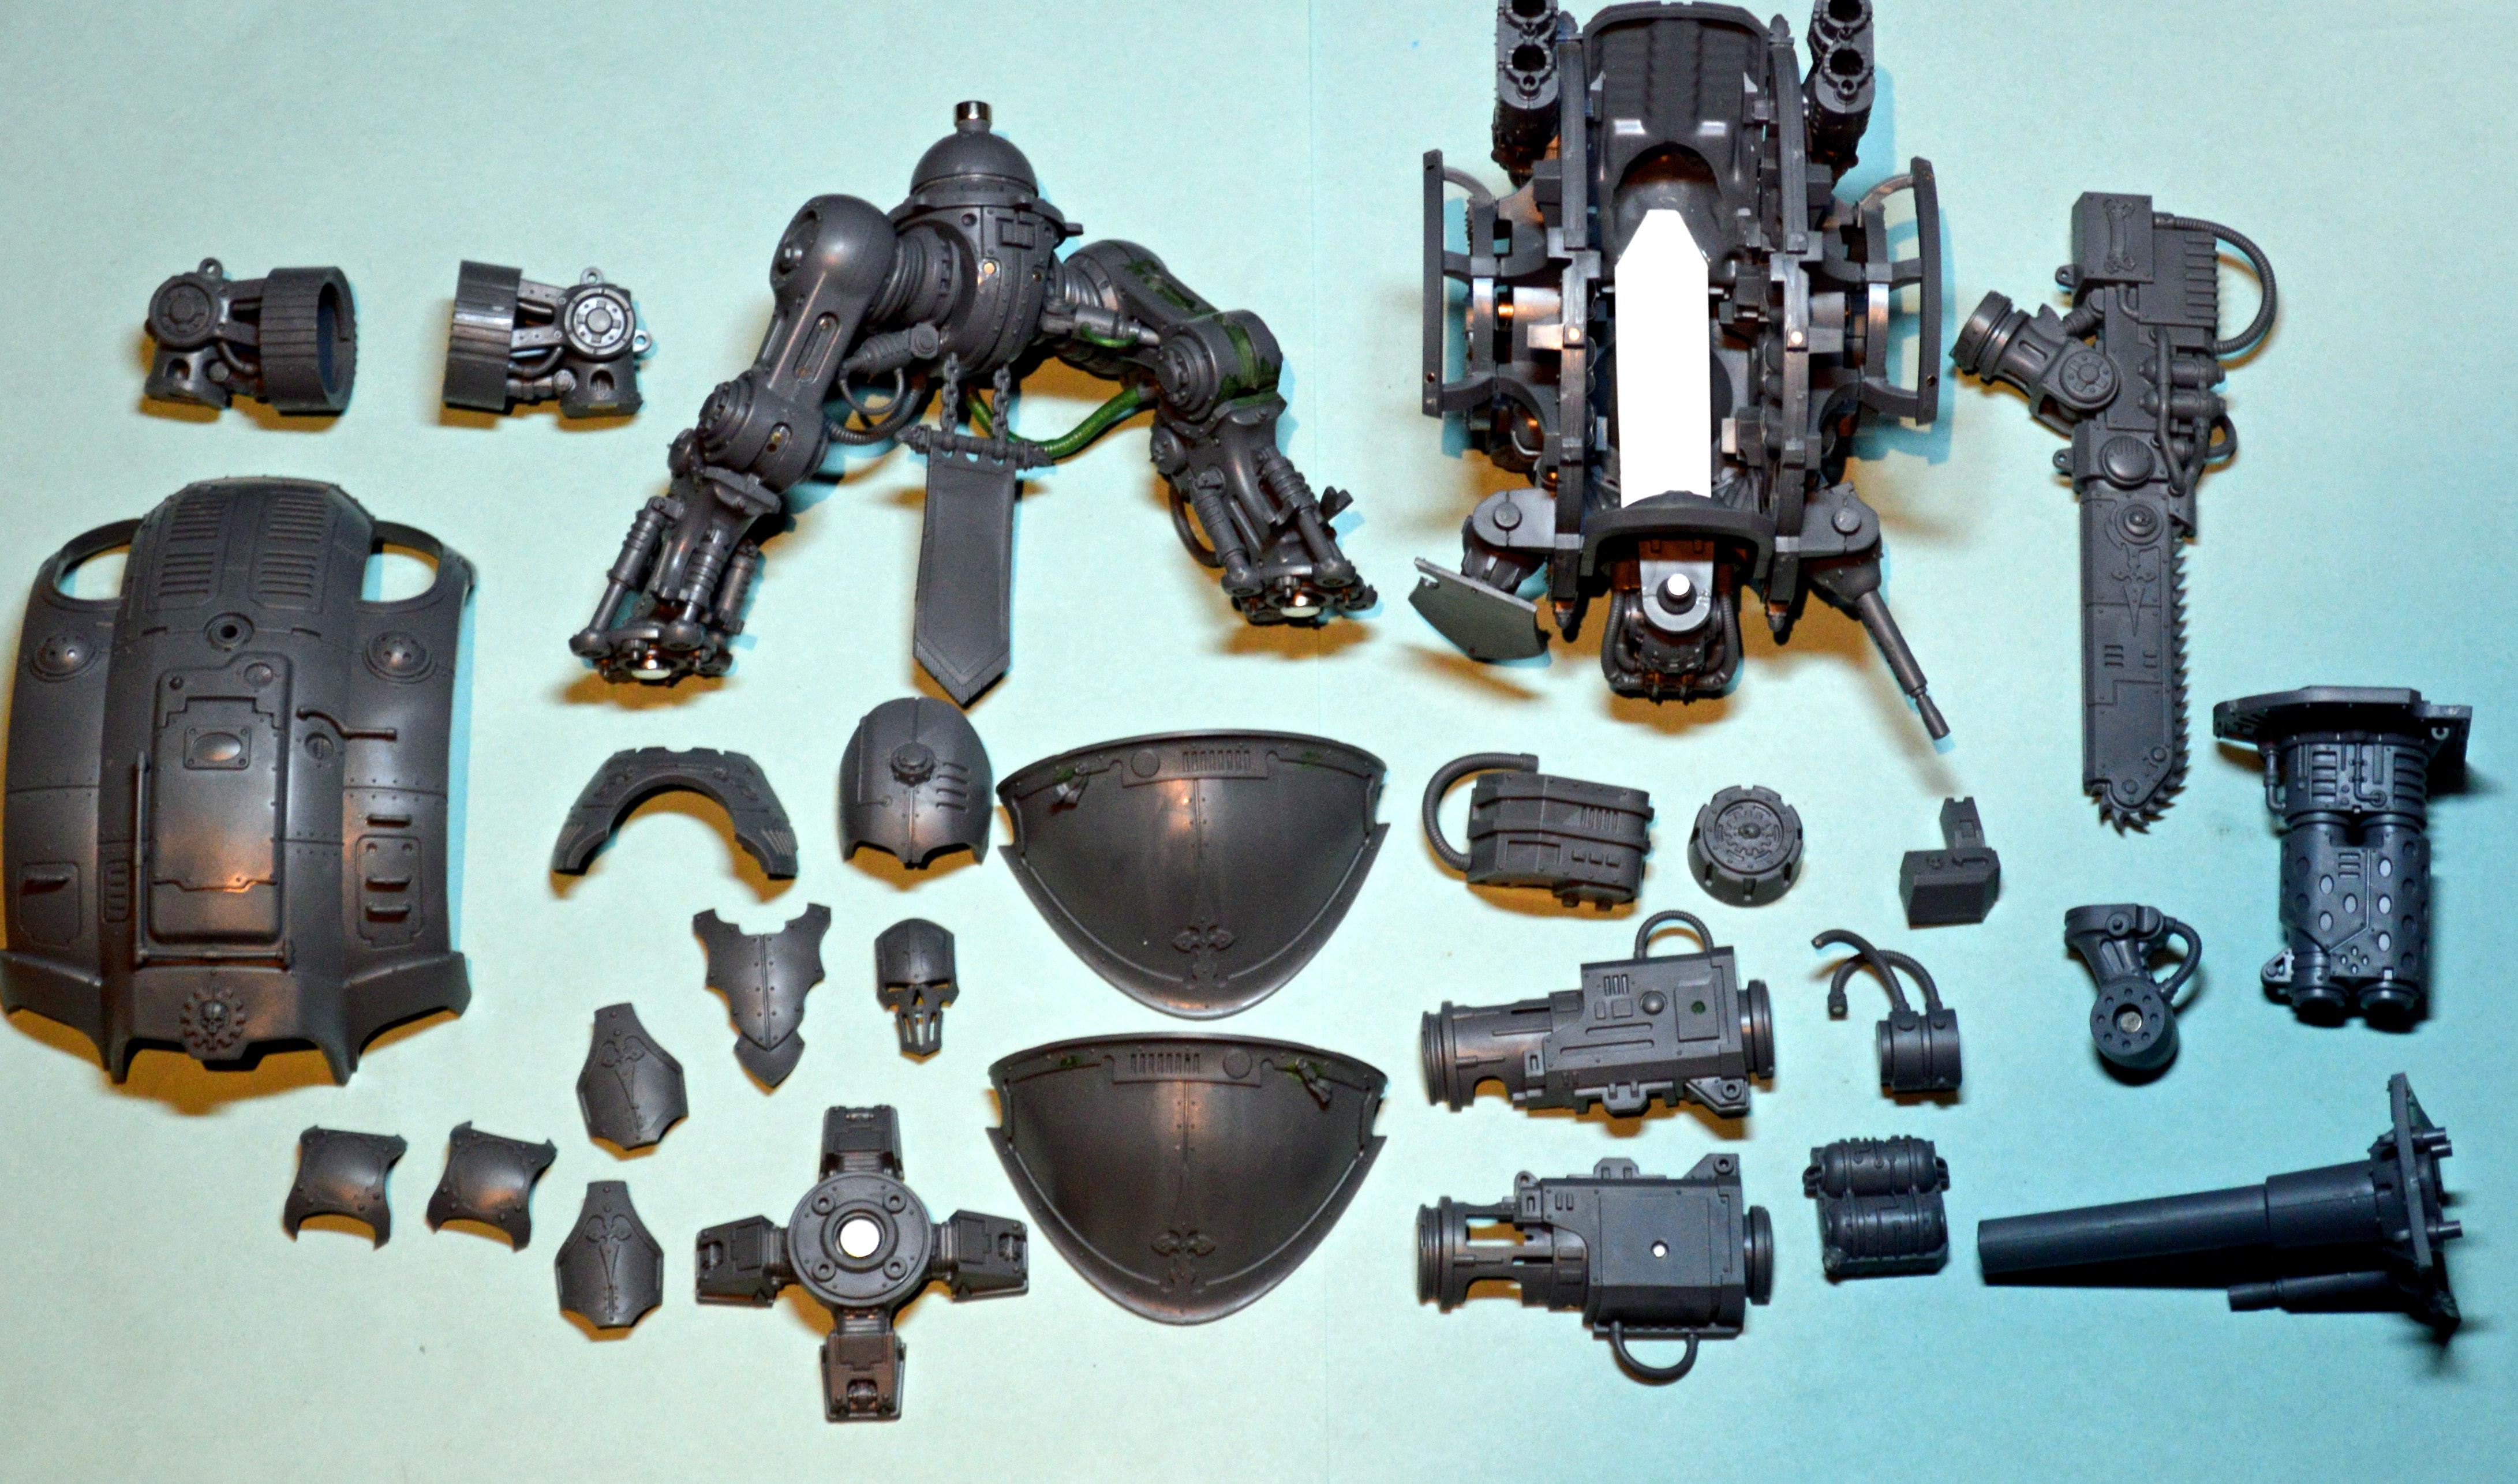 Imperial, Knights, Imperial knight disassembled components